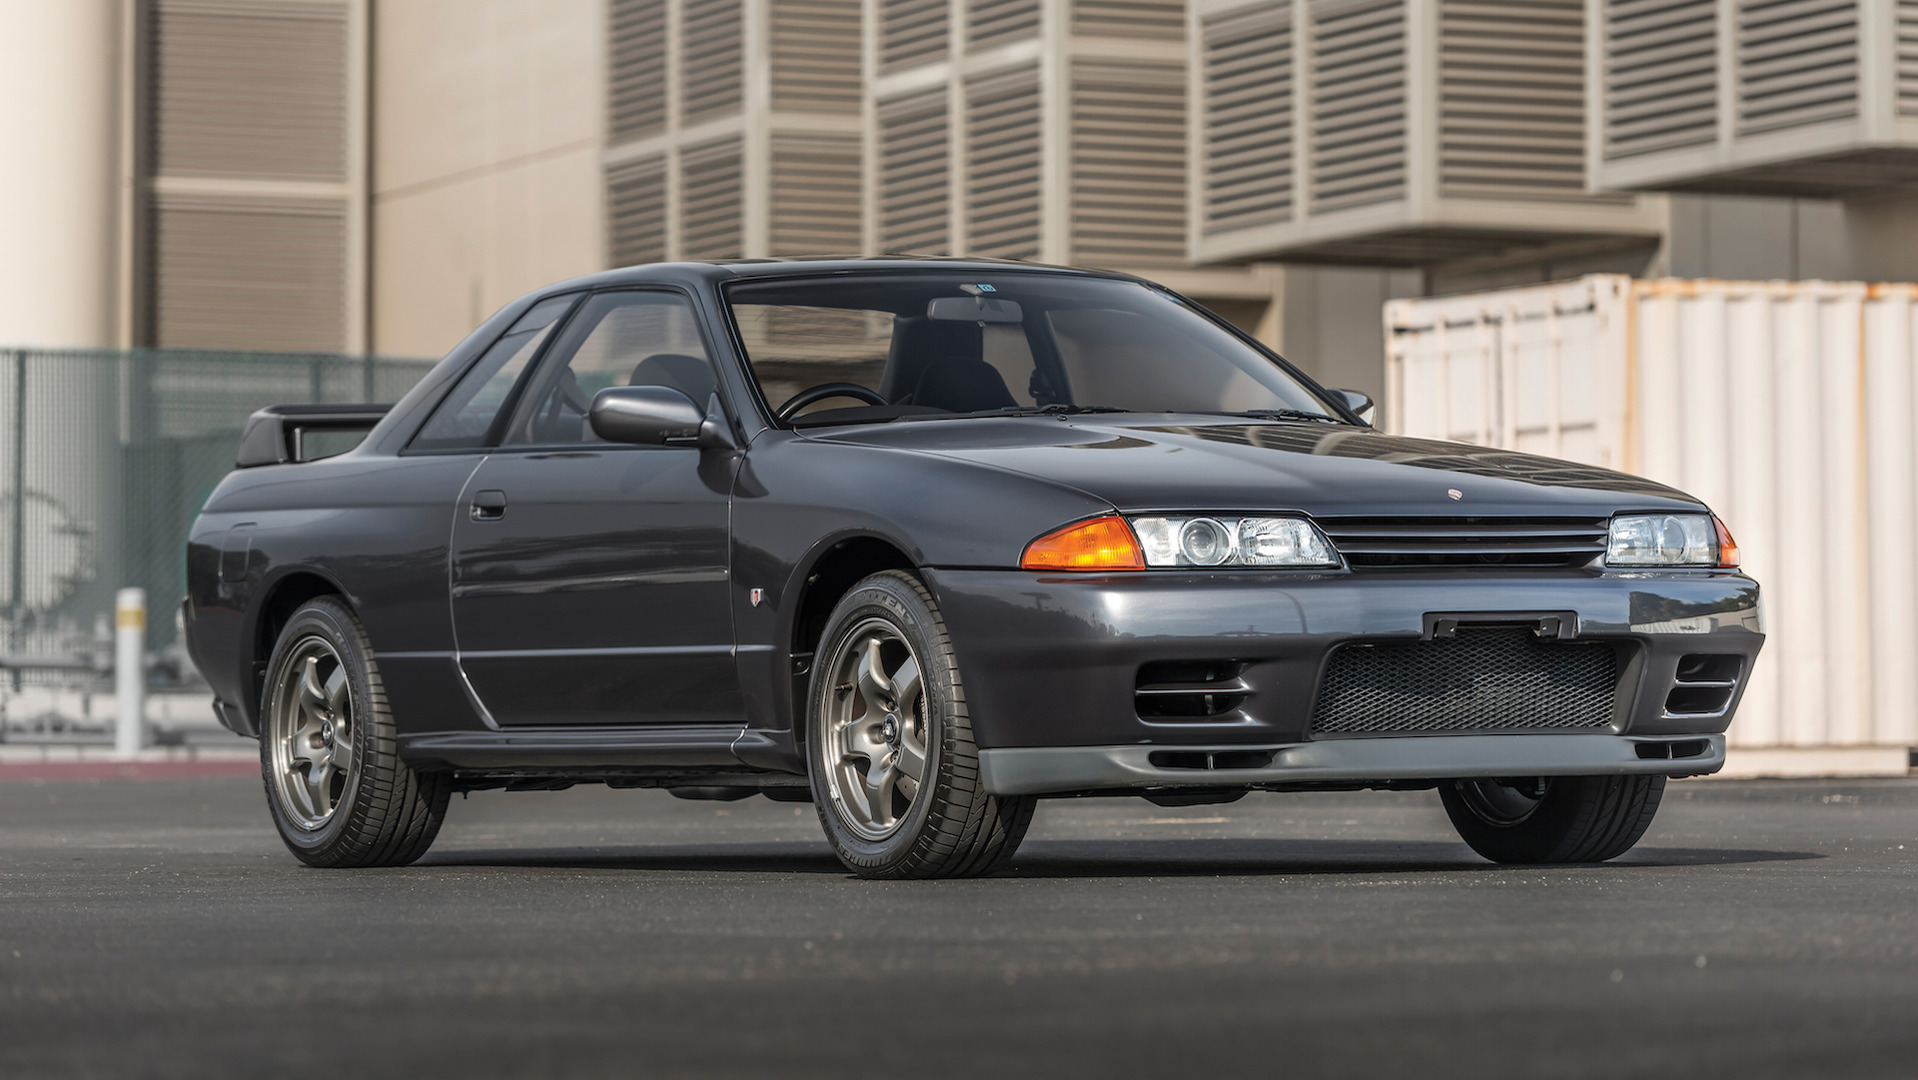 This bone stock Nissan Skyline R32 could be yours